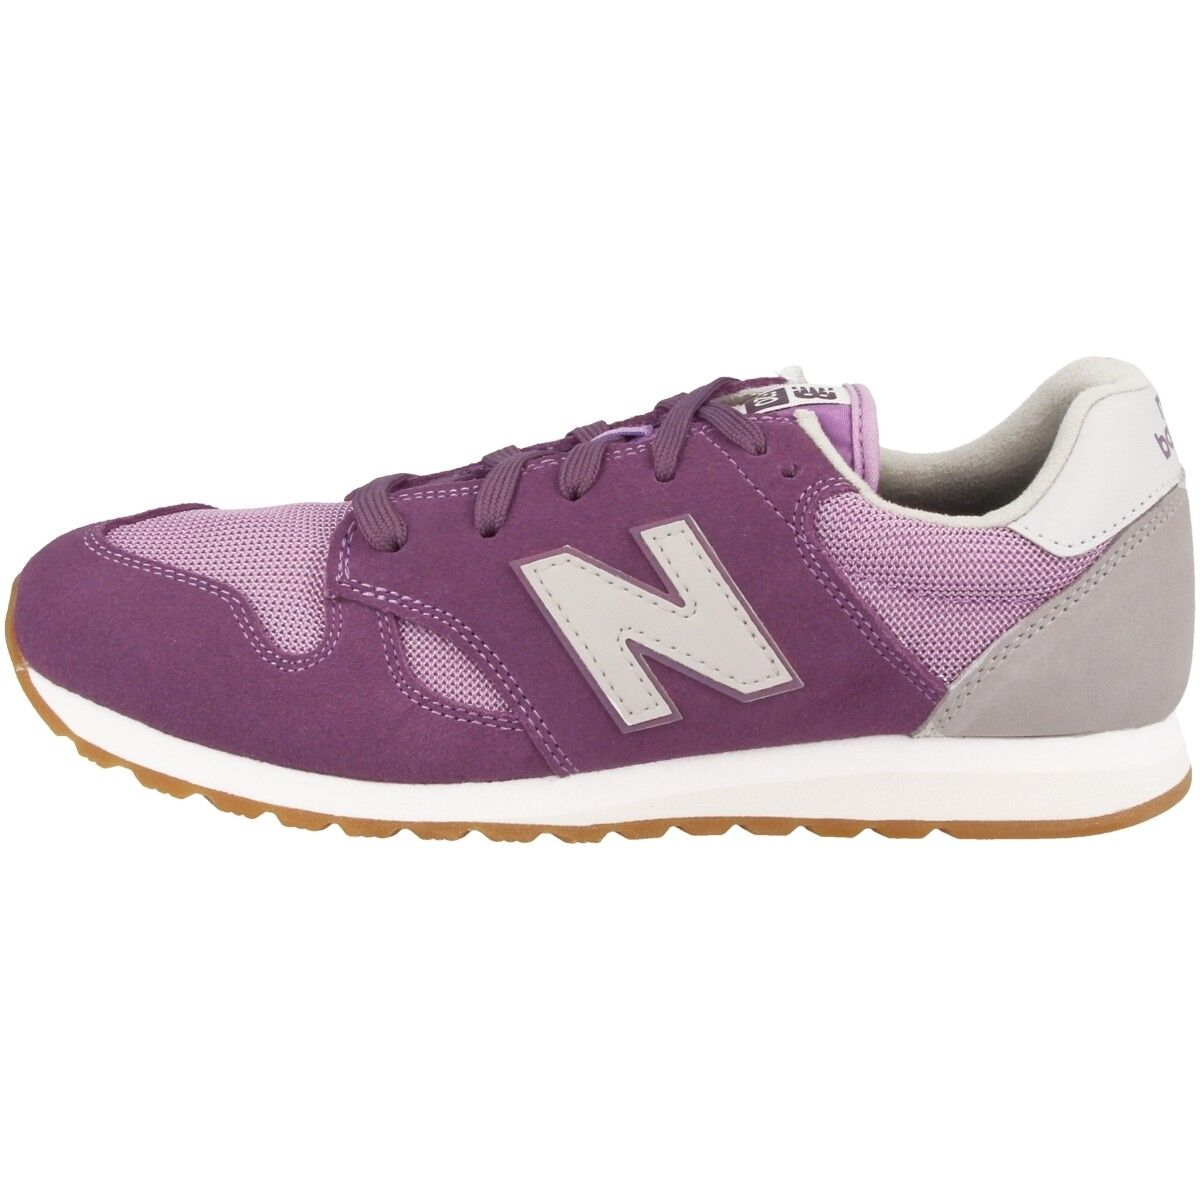 Violet Baskets Balance New 520 Kl Kl520pwy Chaussures Pwy Blanc xY6tqtrdT